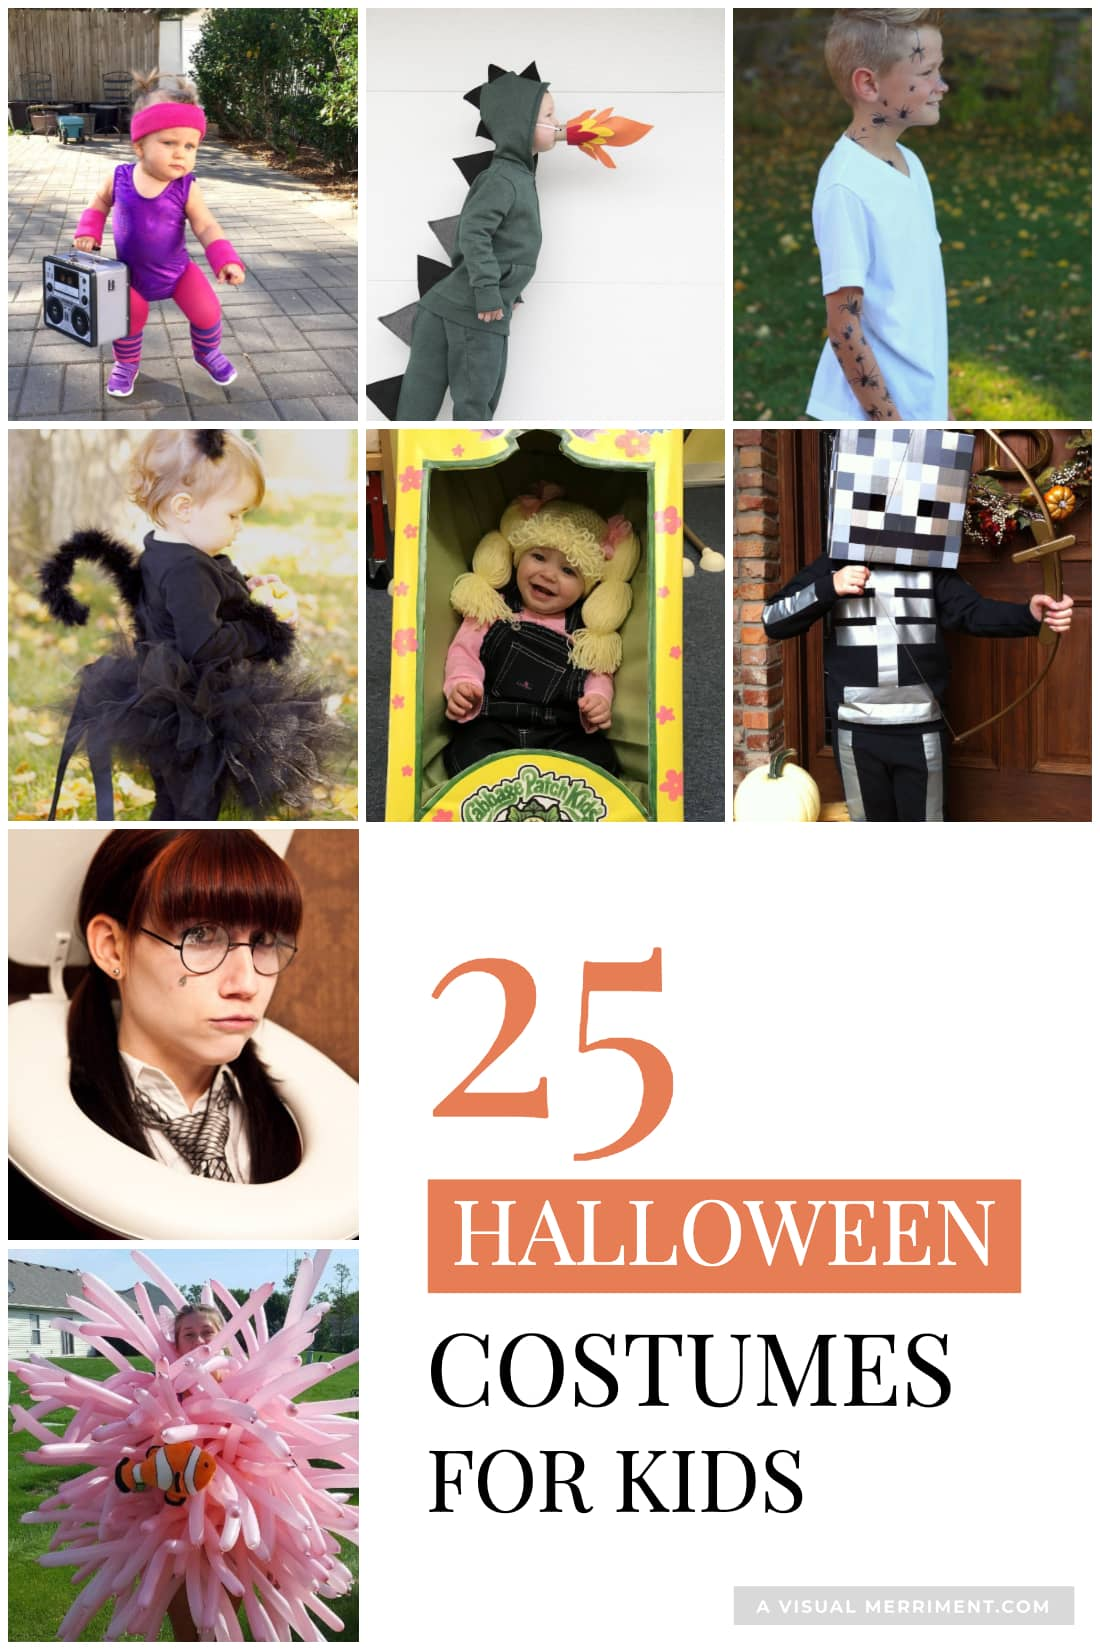 25 Halloween costumes for kids with pictures